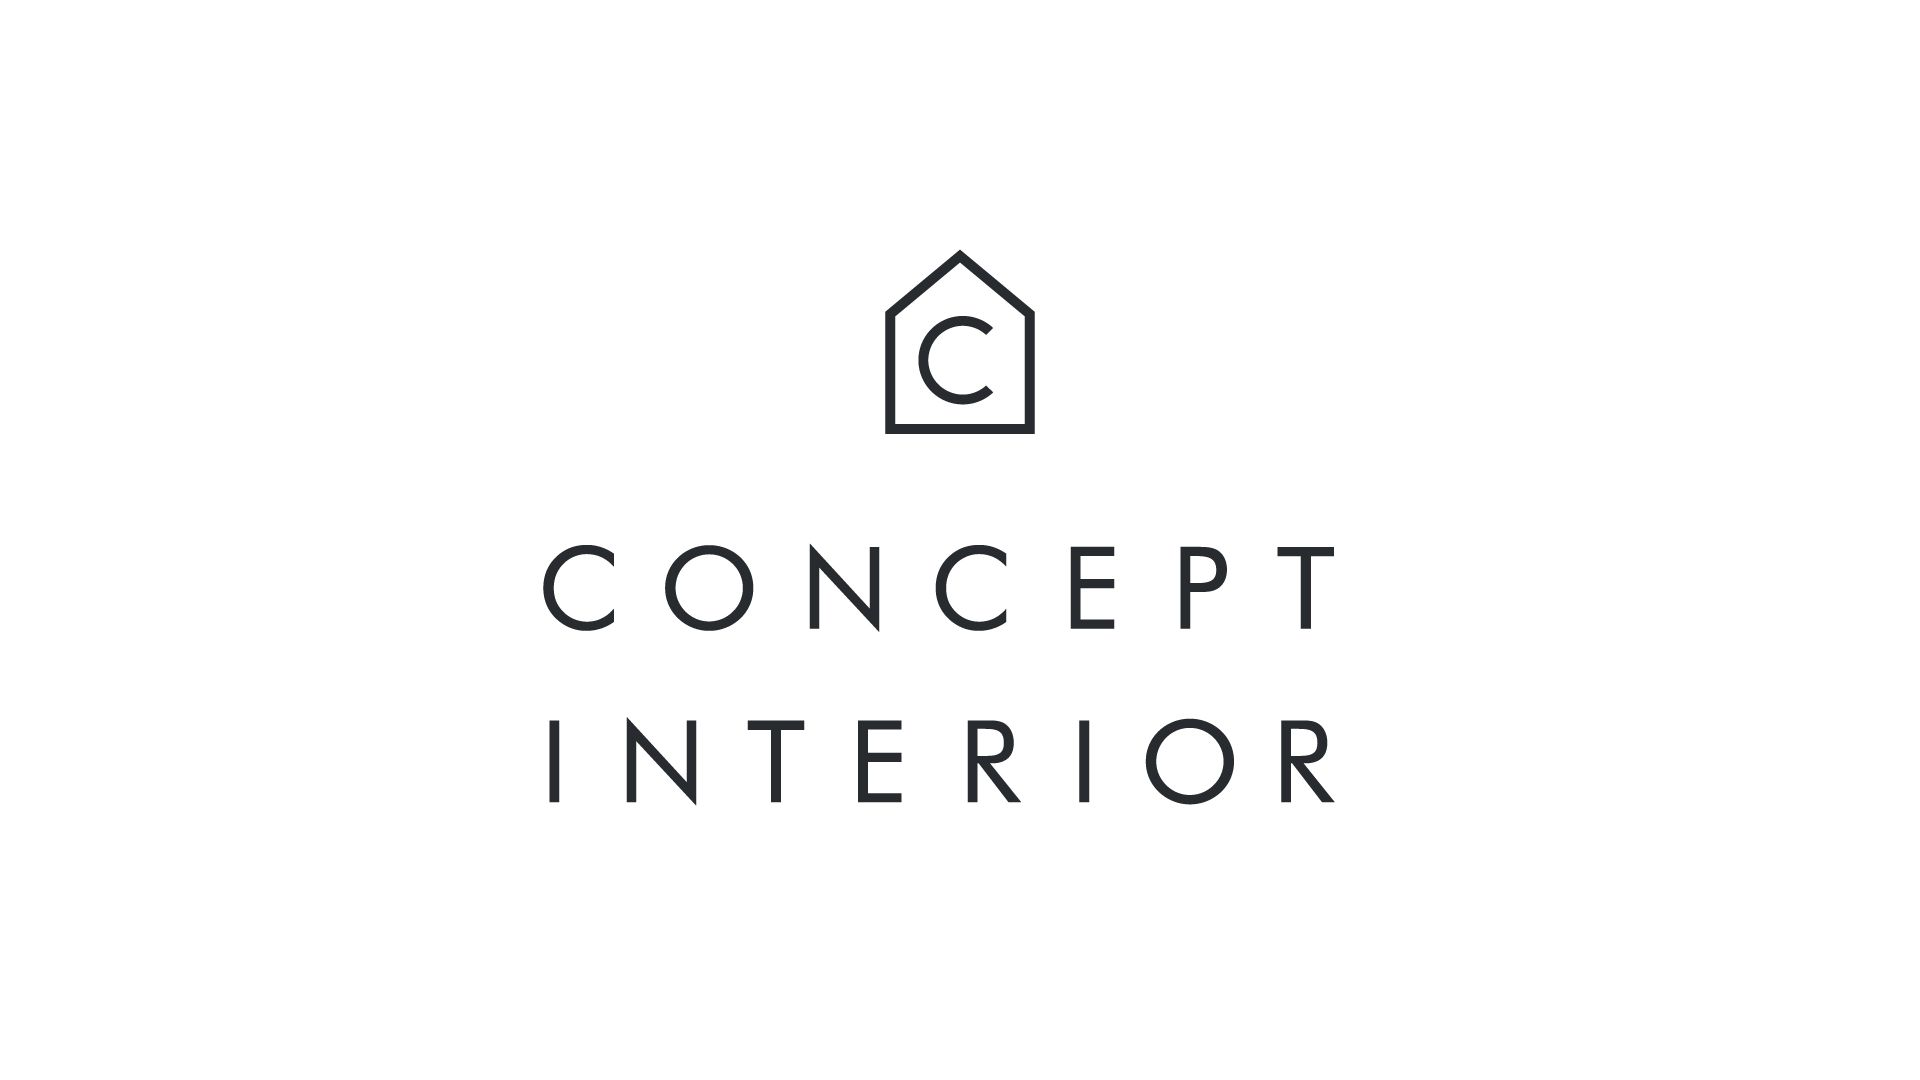 Interior design company logos home design ideas for Interior design company